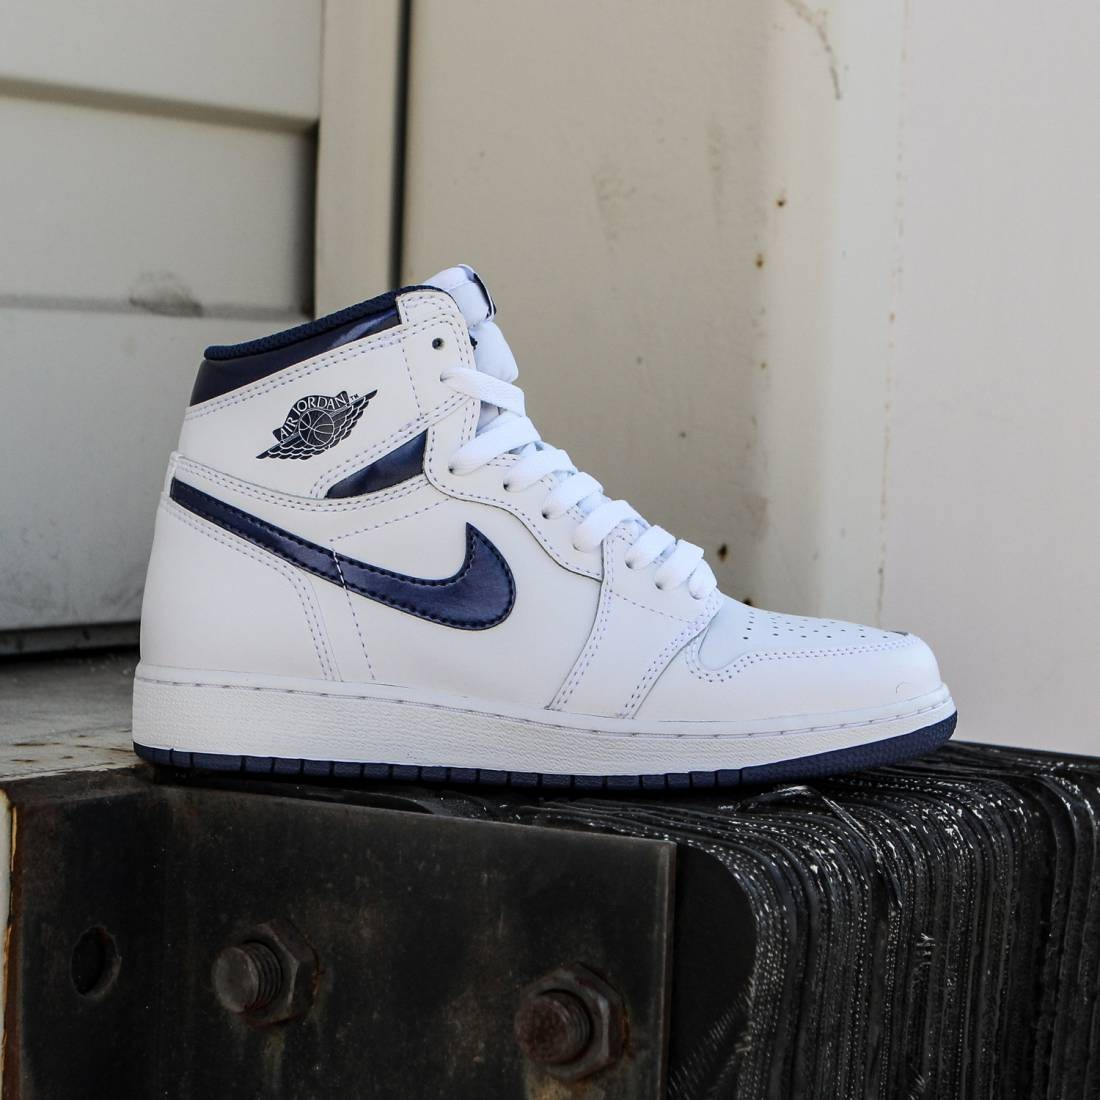 hot sale online 7fadf 41d5c Air Jordan 1 Retro High OG (BG) Big Kids (white / midnight navy)